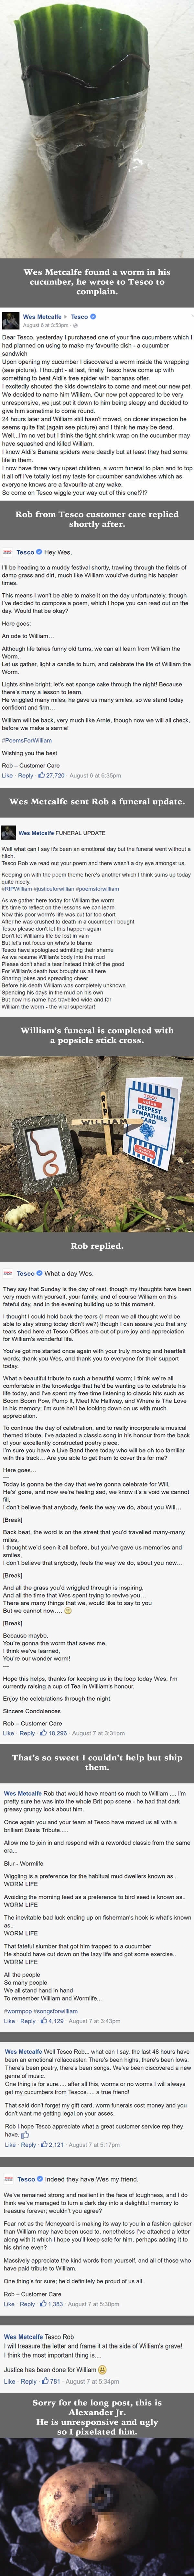 Man held funeral for worm found in cucumber